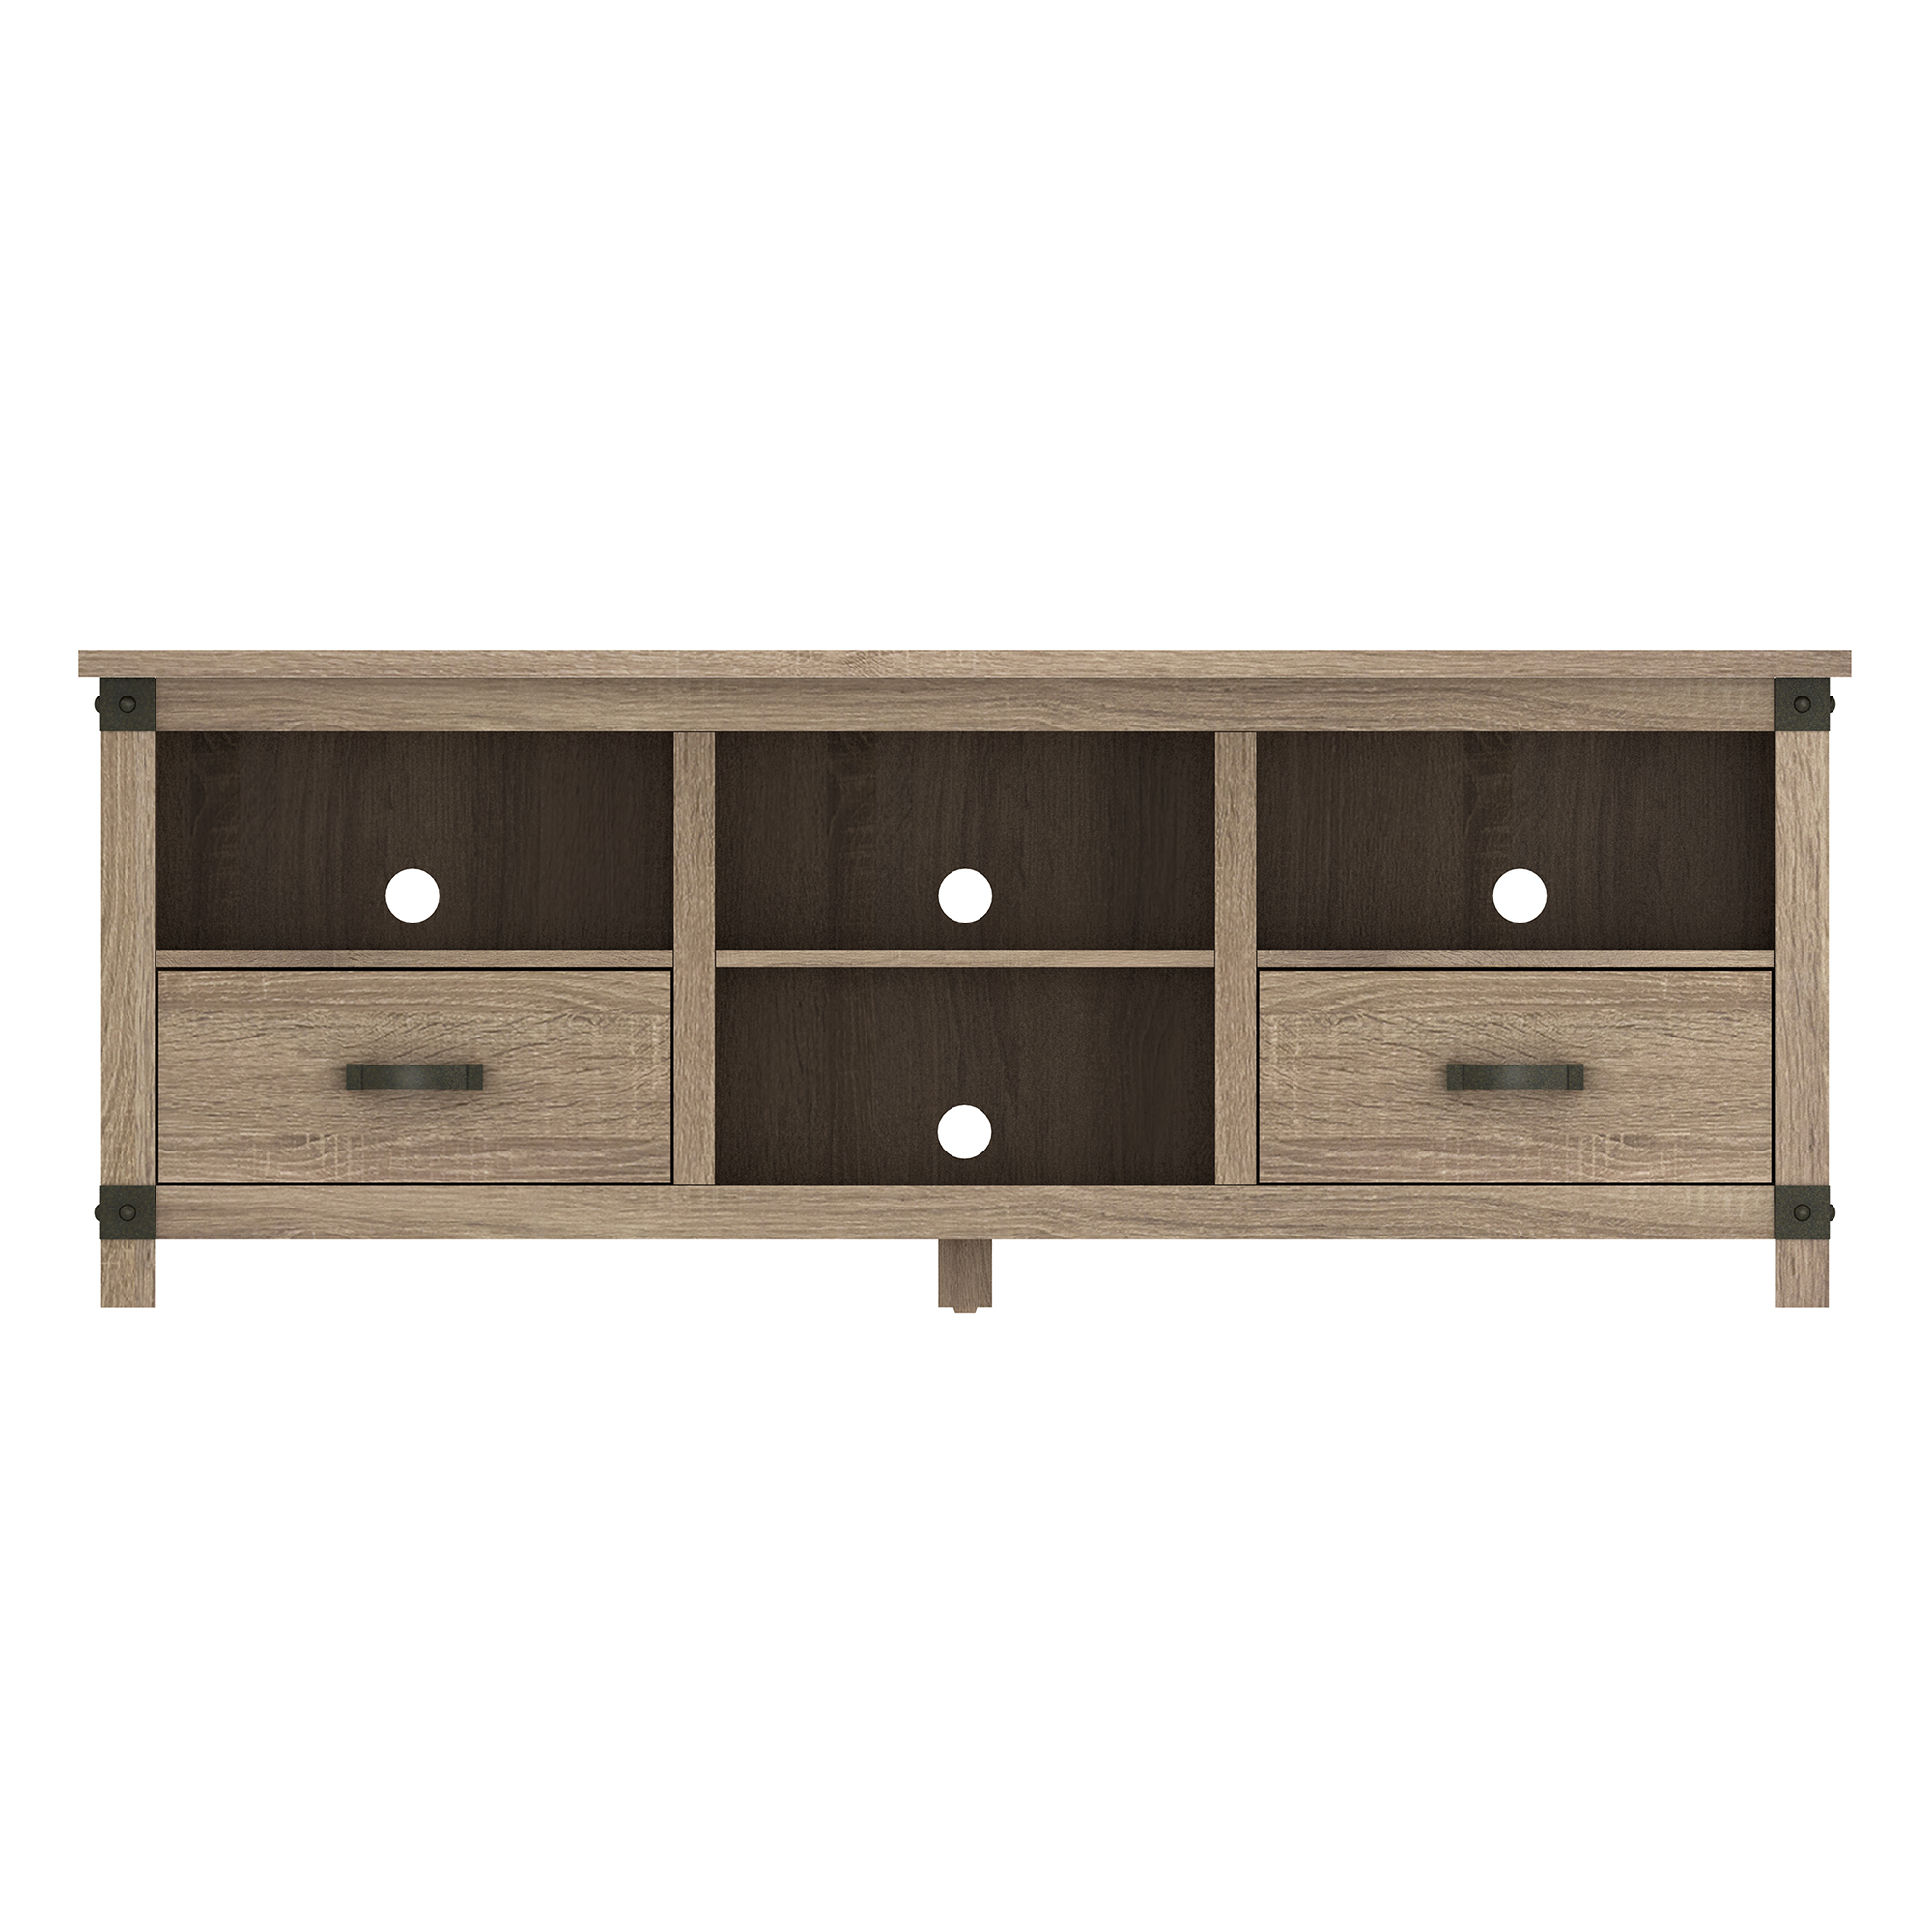 Croxley Minden Oak TV Stand with Drawers for TVs up to 70""